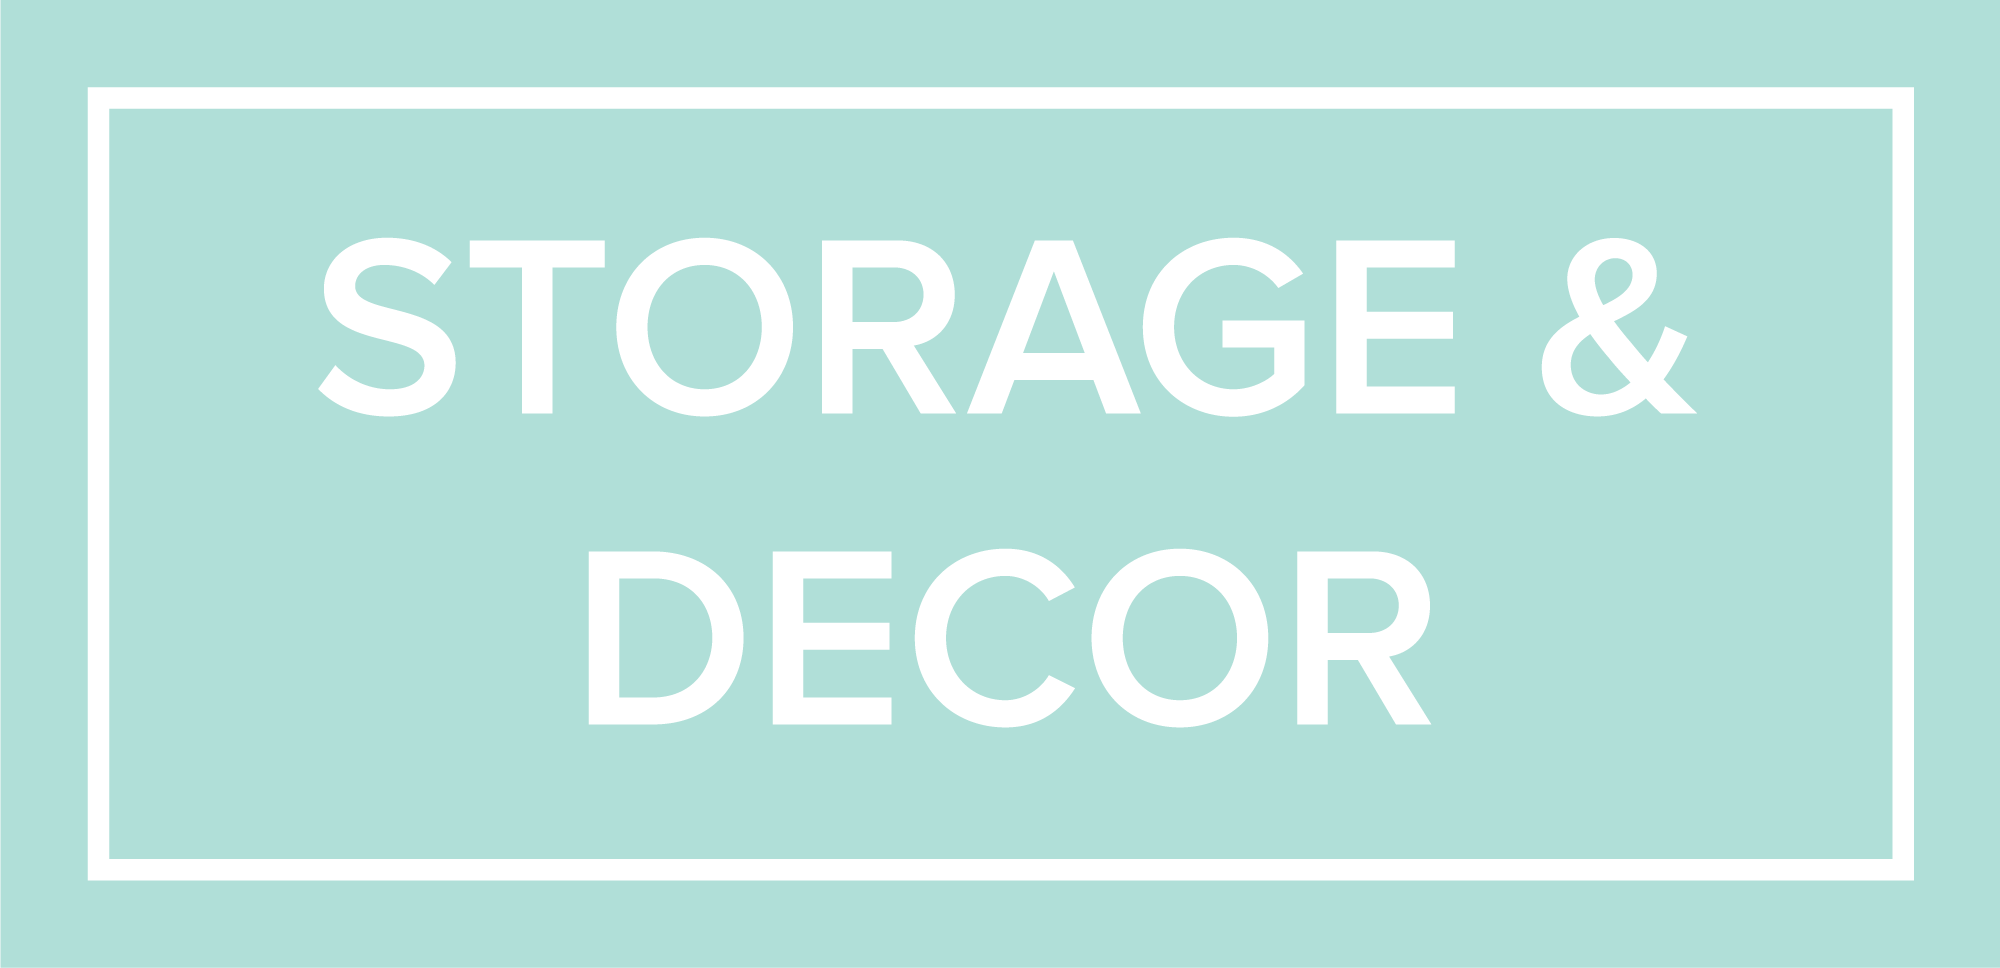 Storage & Decor 2